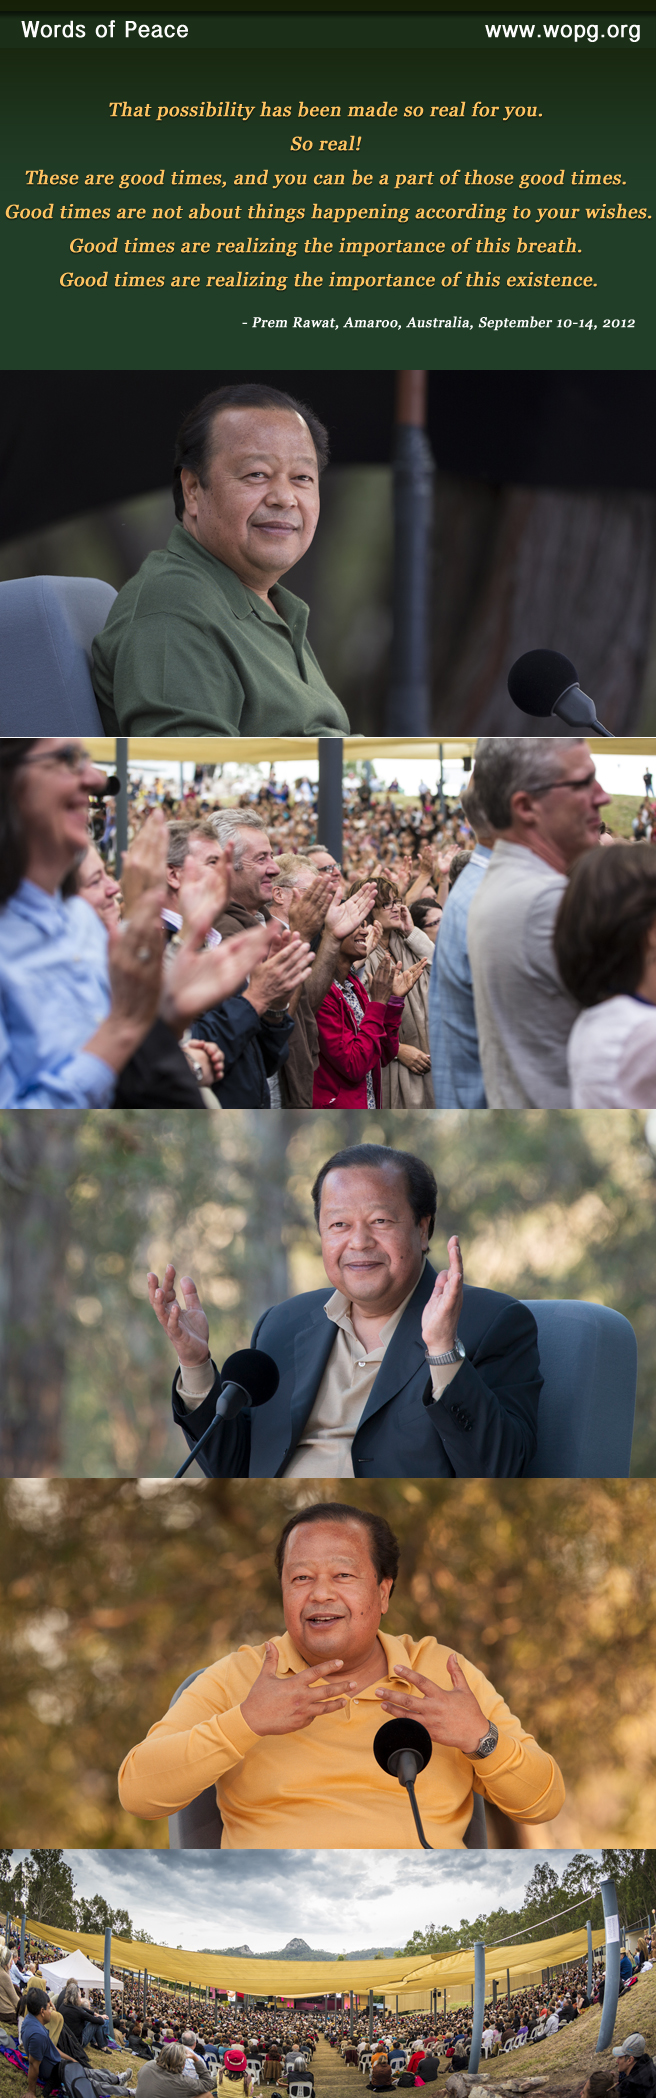 event,Prem Rawat at Amaroo, Australia - September 2012,quote